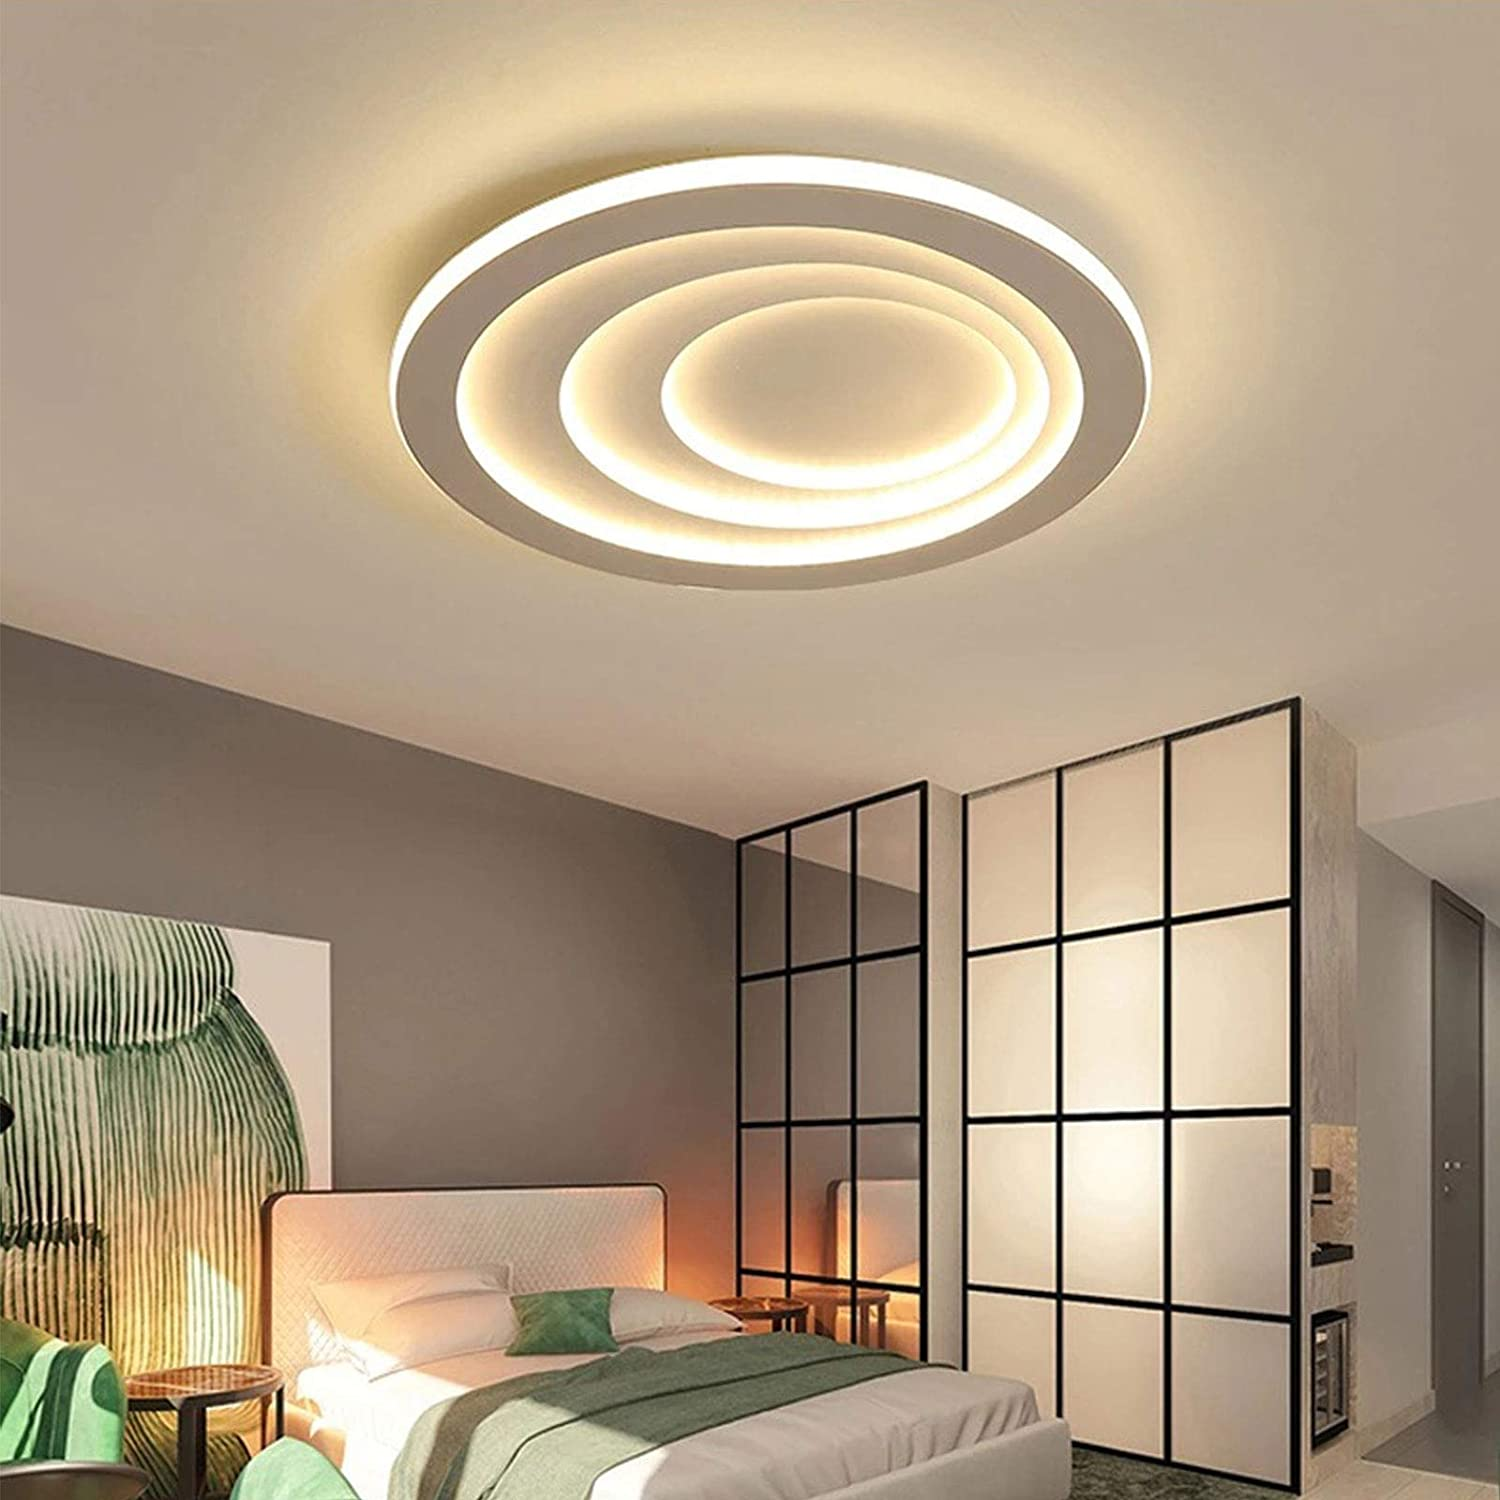 19.7'' Ceiling Lamp Acrylic Warm White Diameter 50cm-Stepless Dimming with Simple Ceiling Light for Dining Room Bedroom Livingroom